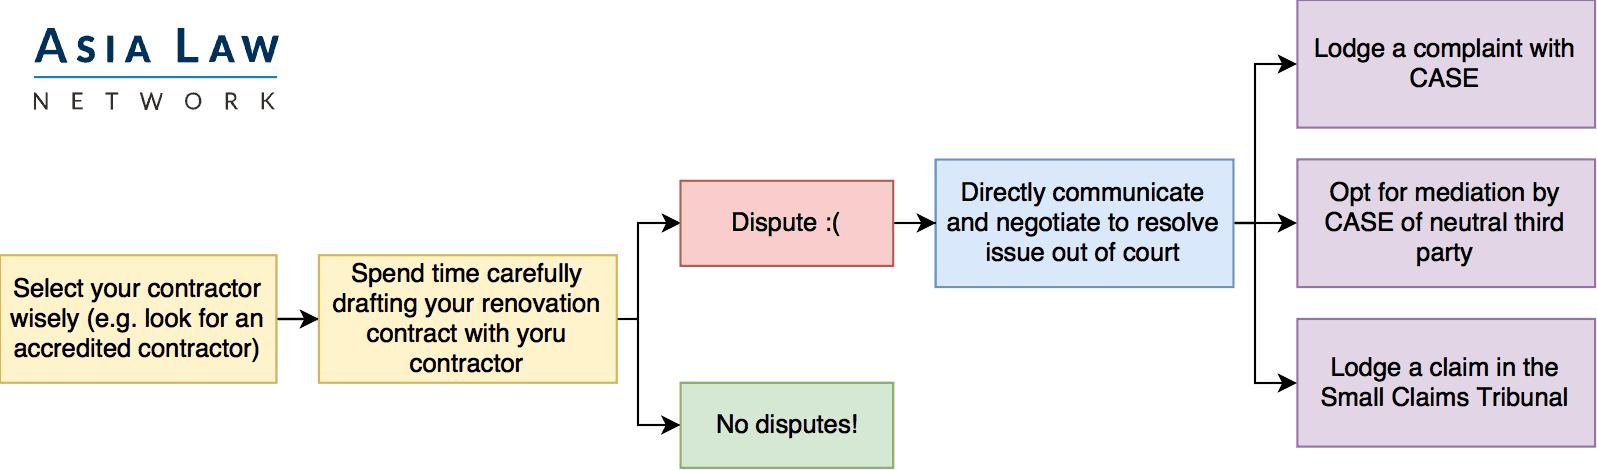 Flow chart showing a recommended series of methods to resolve renovation disputes in Singapore